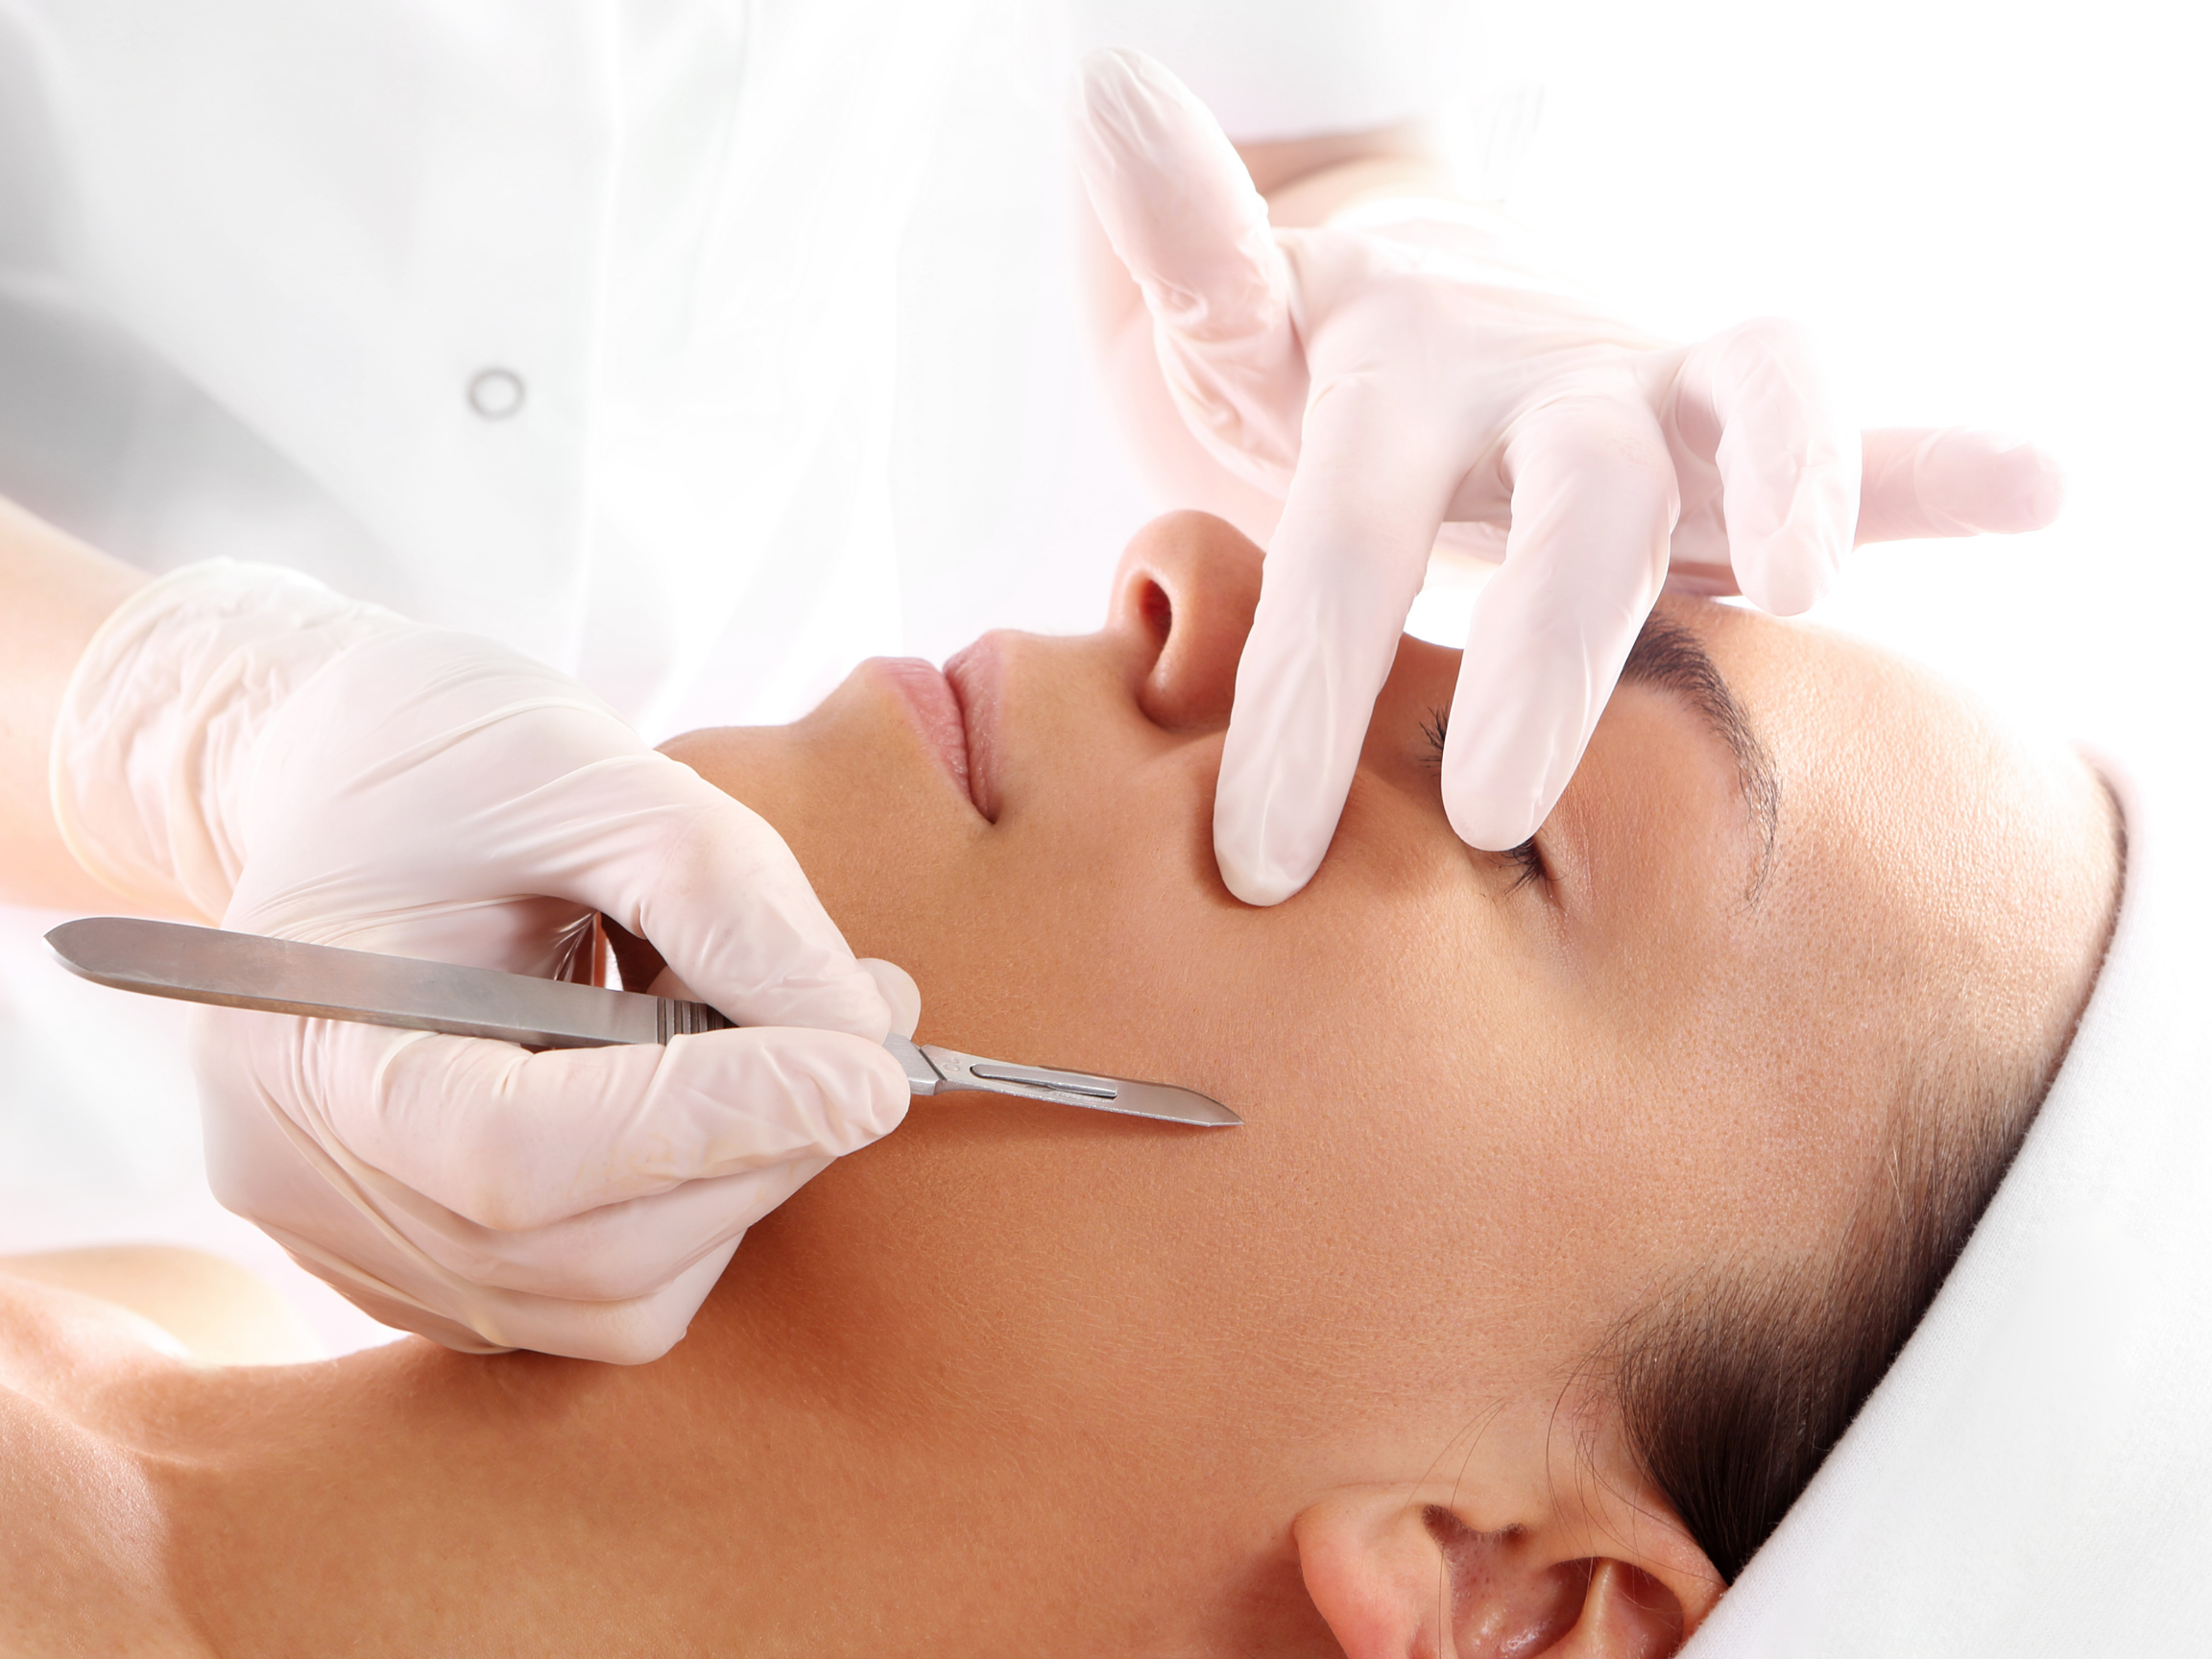 woman receiving a professional dermaplaning treatment from someone with gloved hands and a scalpel